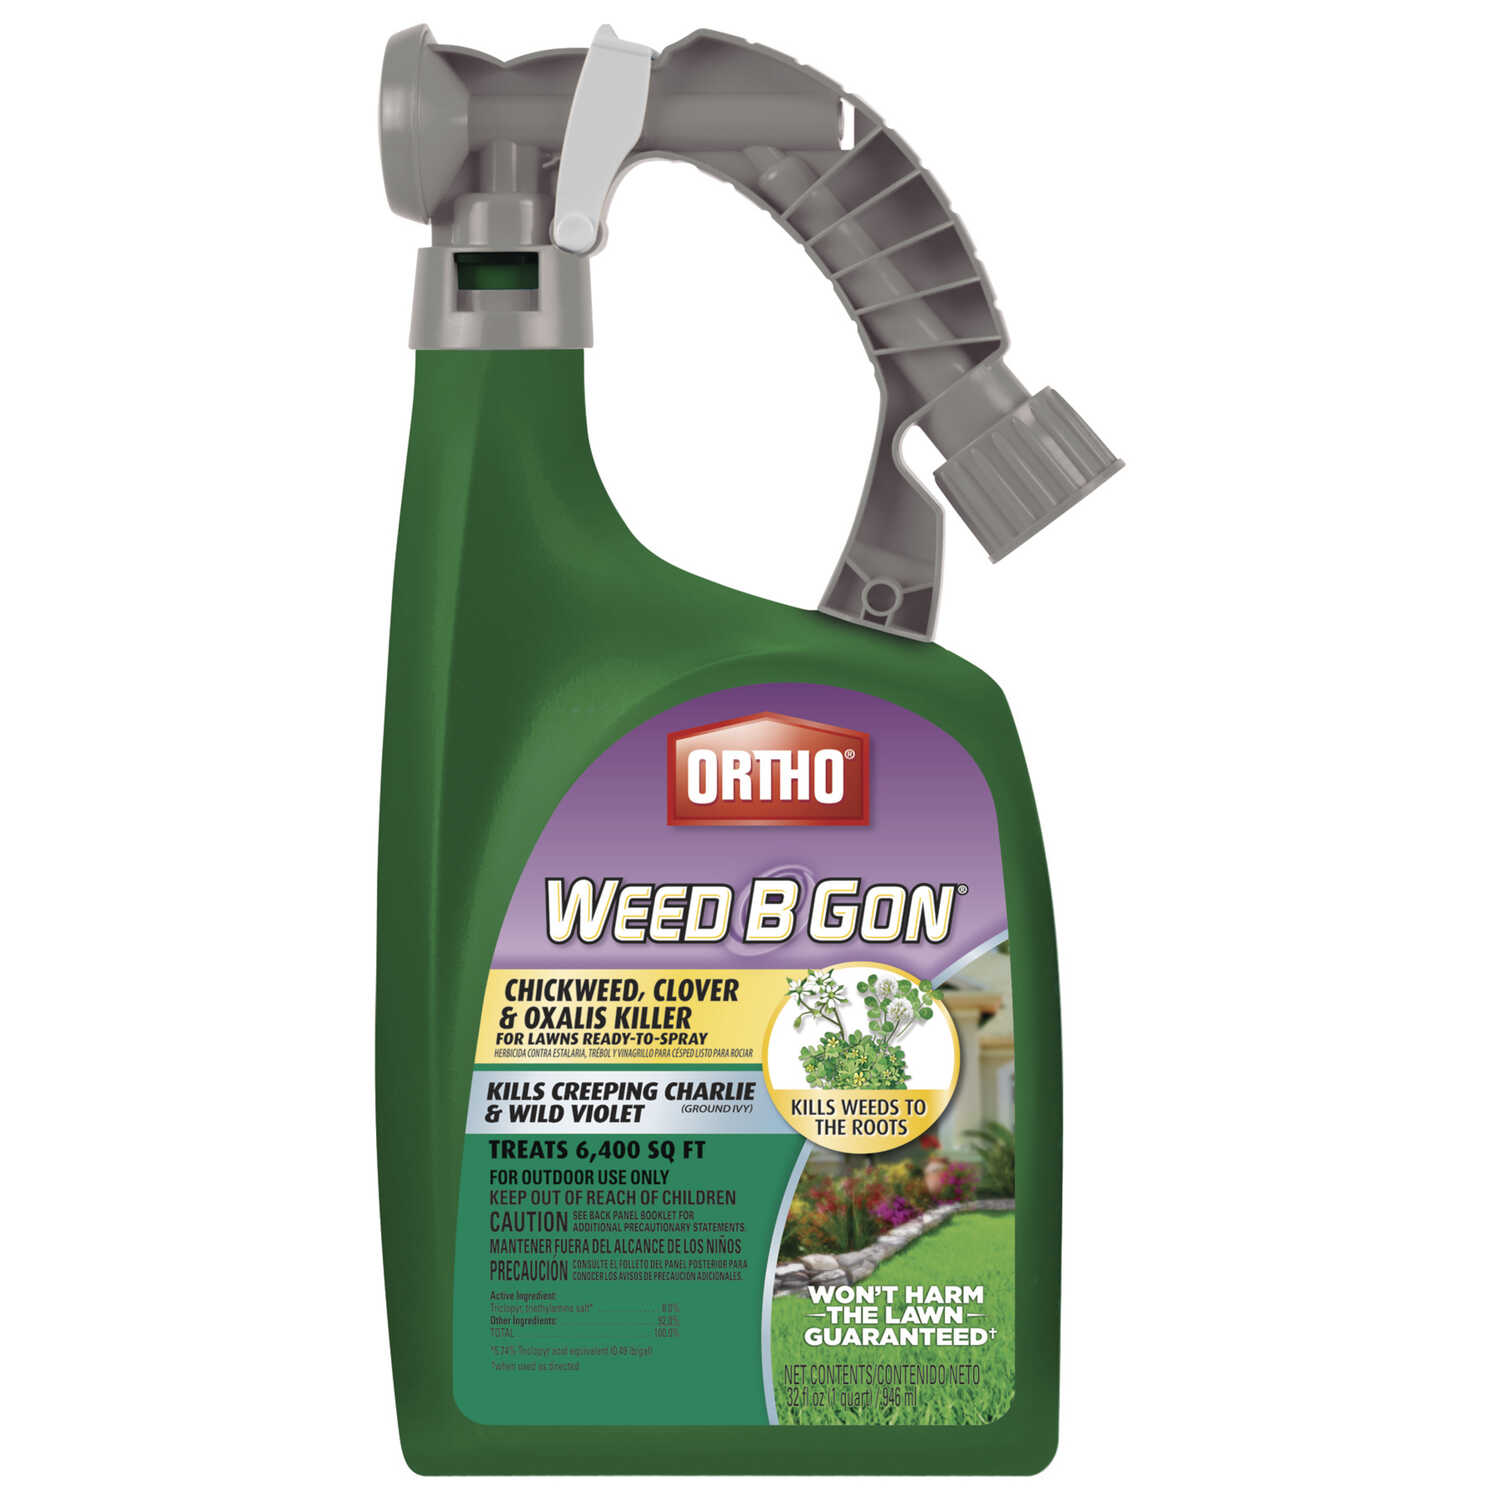 Ortho  Weed B Gon  RTS Hose-End Concentrate  Weed Control for Lawns  32 oz.